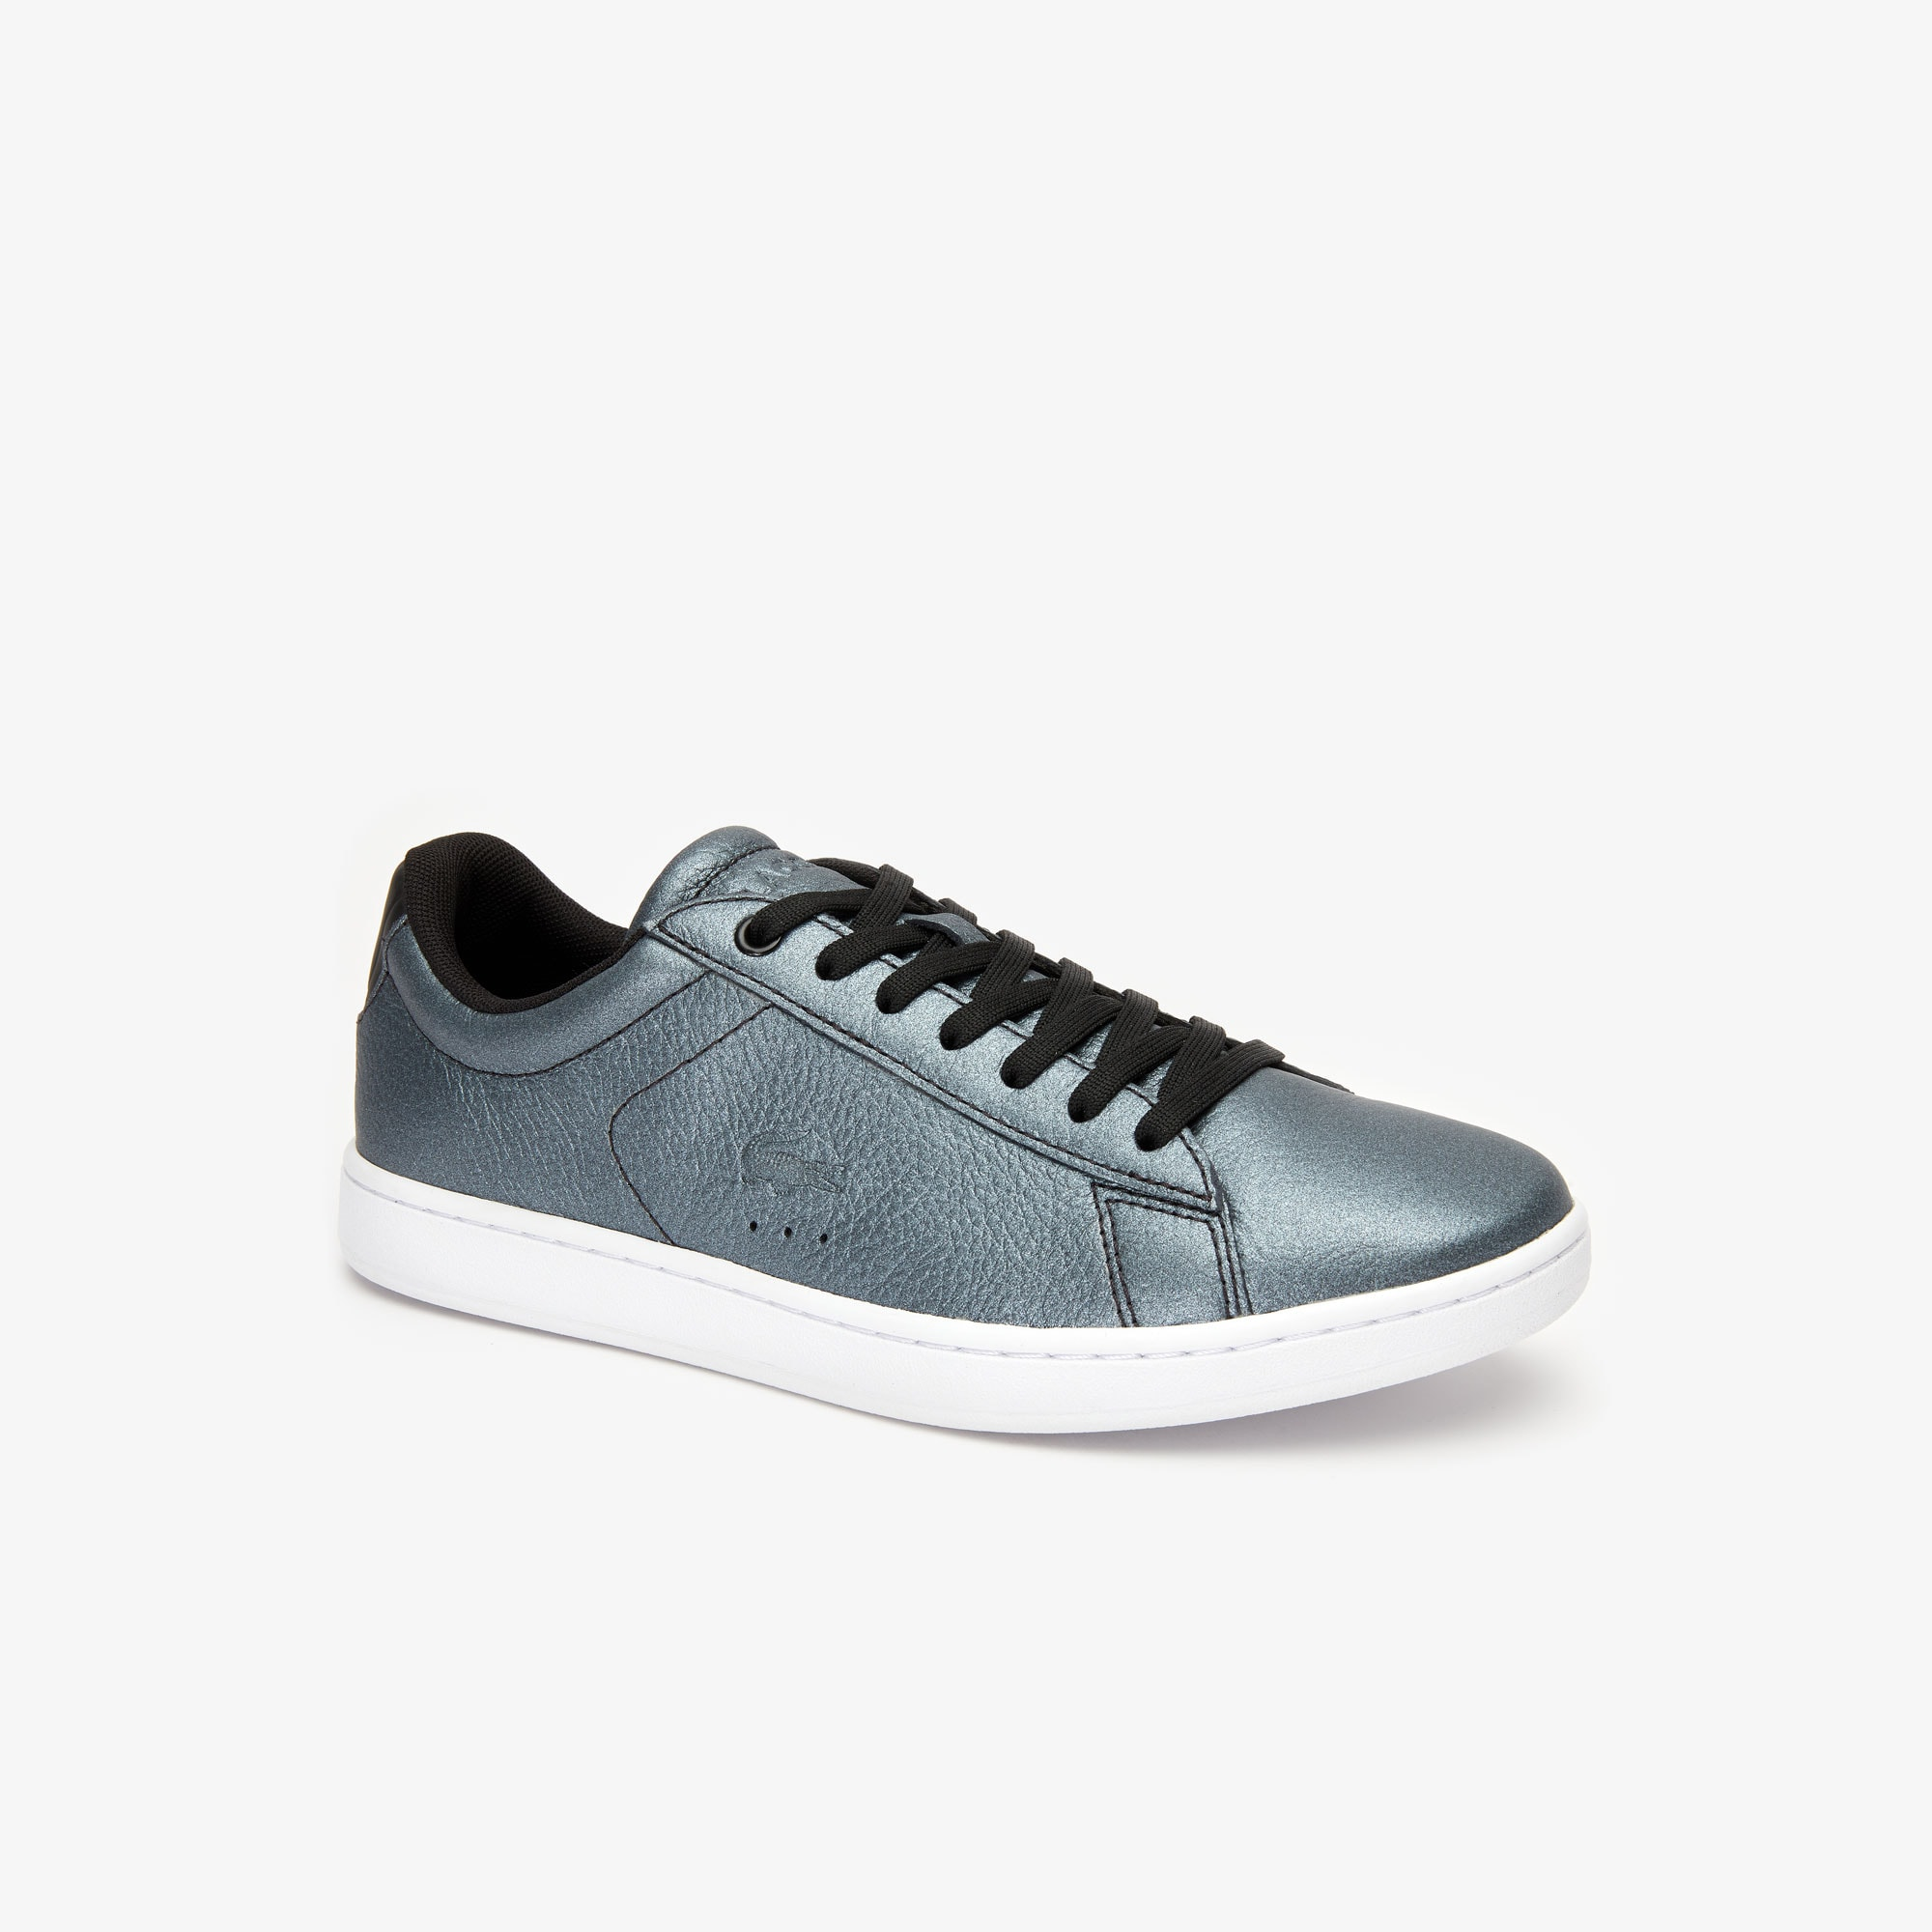 f6e790489bb Lacoste shoes for women: Boots, Trainers, Sneakers   LACOSTE